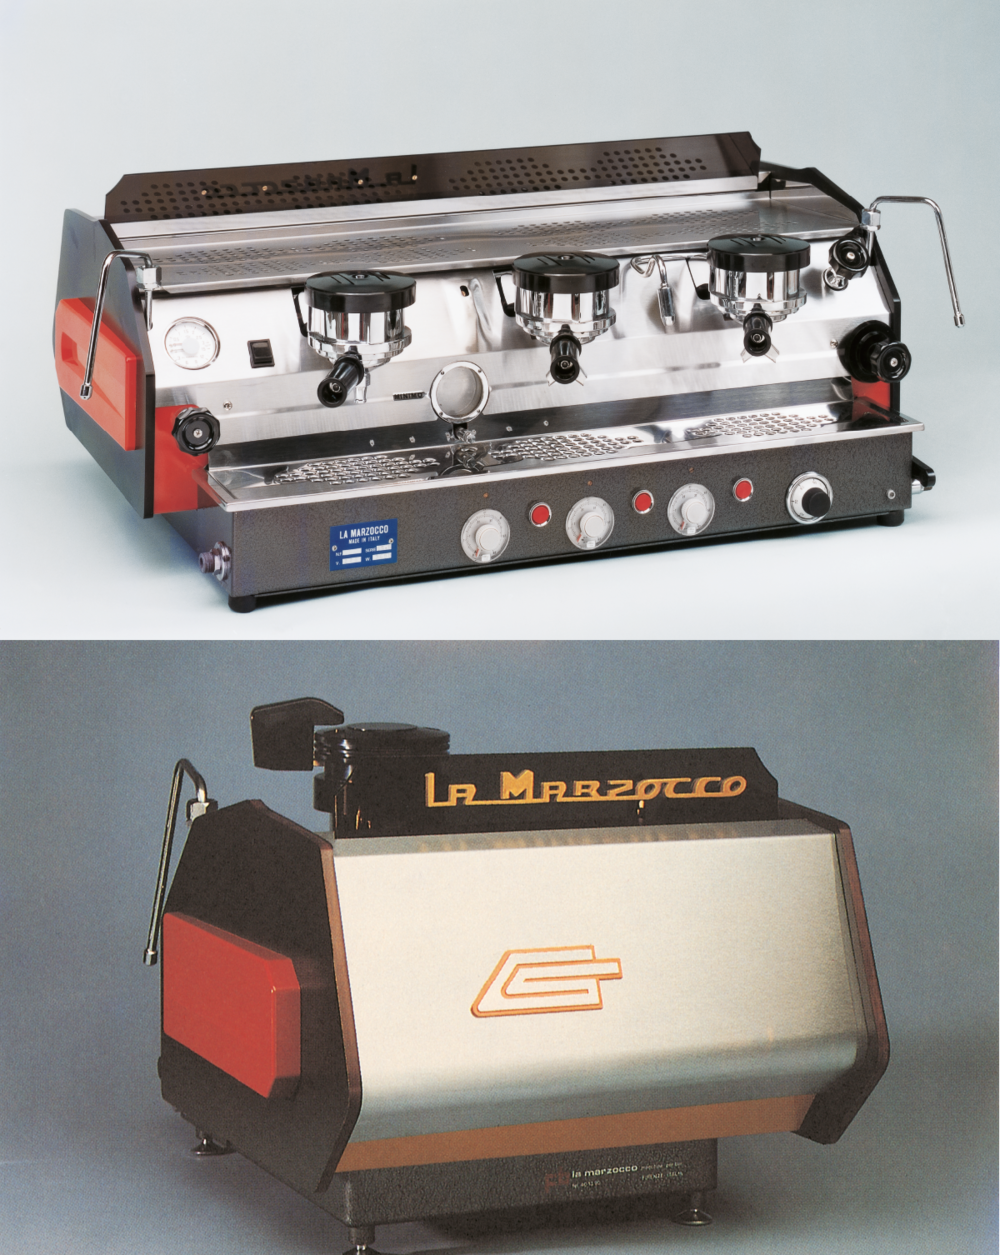 """GS series"" espresso machine (La Marcozza, 1970)"